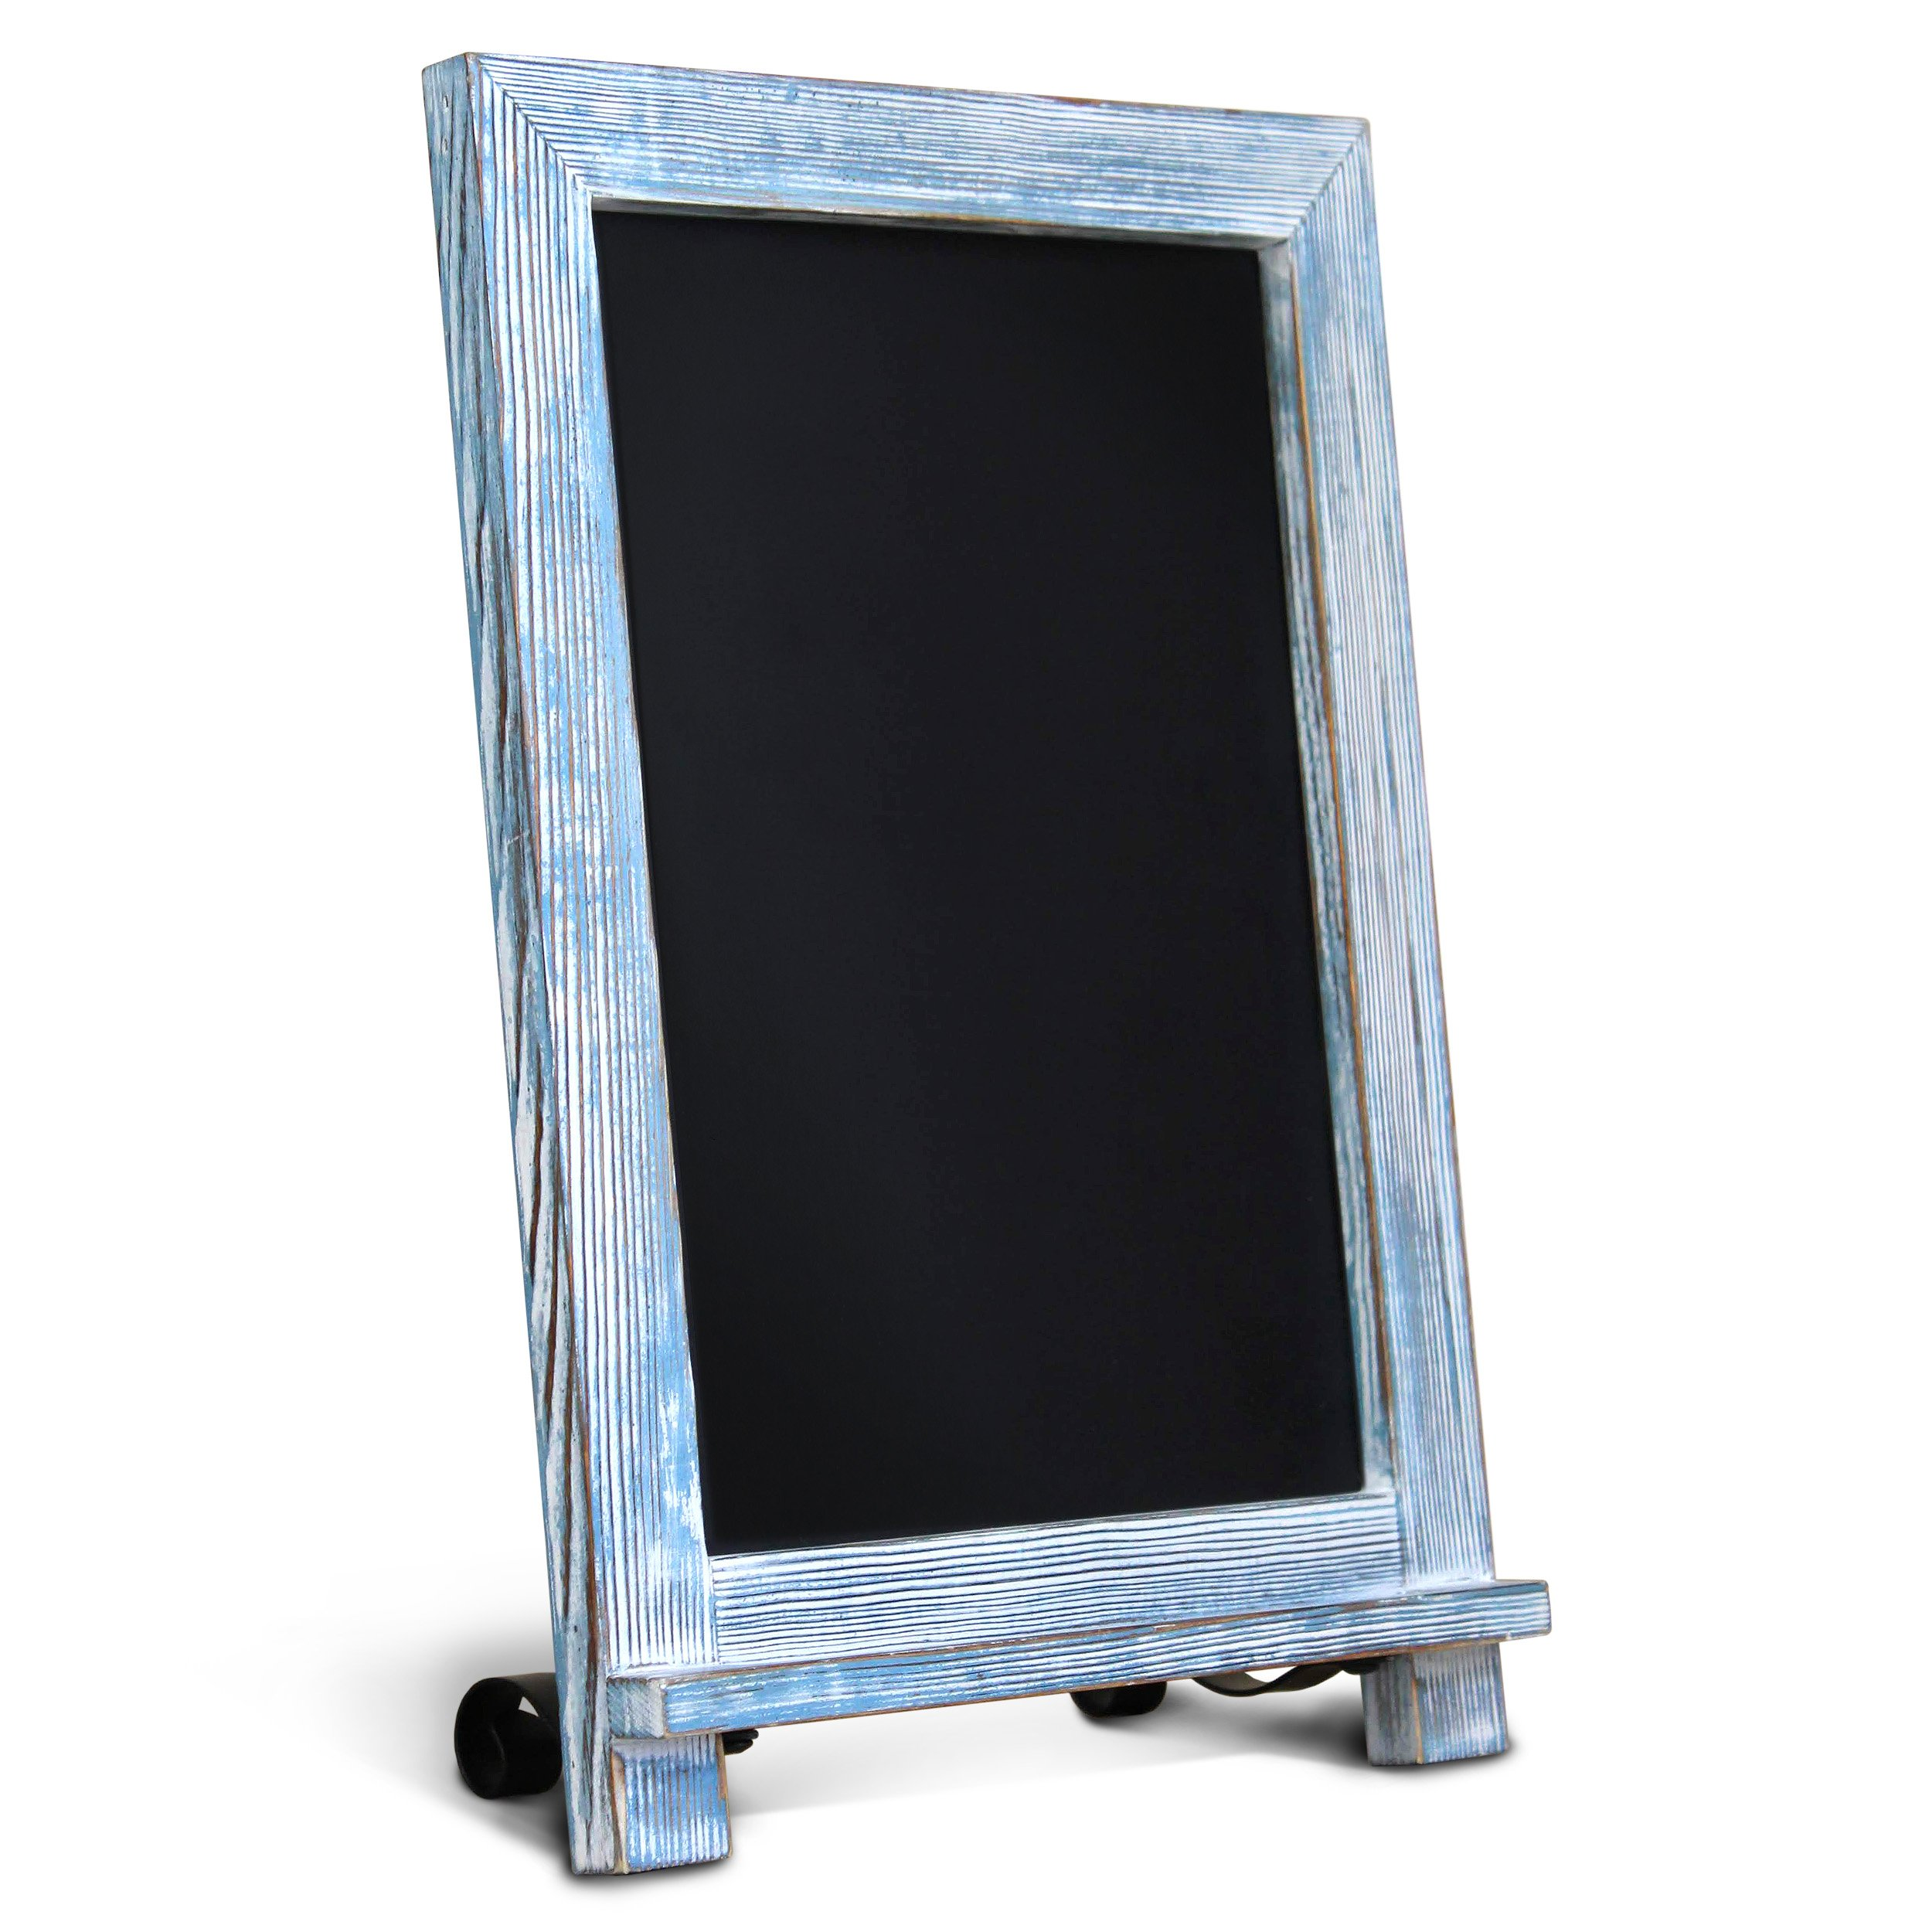 """HBCY Creations Rustic Small Tabletop Chalkboard Sign/Hanging Magnetic Wall Chalkboard/Countertop Chalkboard Easel/Kitchen Countertop Memo Board/9.5"""" x 14"""" Inches. For Weddings, Baby Announcements."""